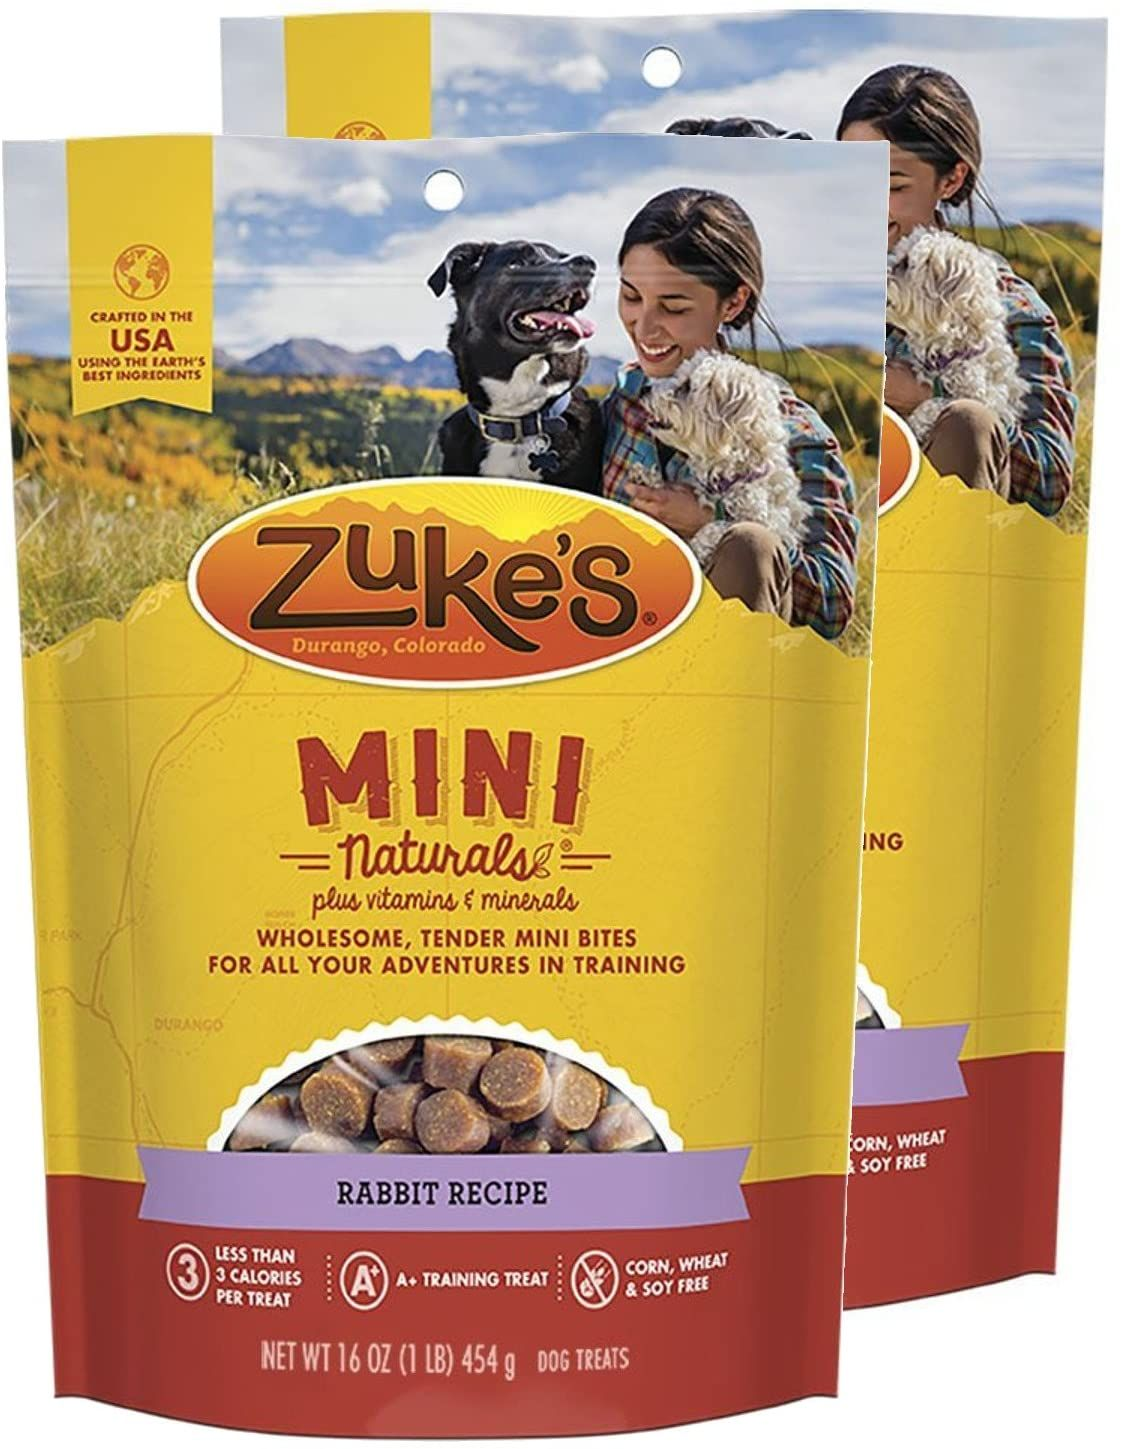 Zuke S Mini Naturals Dog Treats Rabbit Recipe 16 Oz 2 Pack Natural Dog Treats Dog Treats Rabbit Food